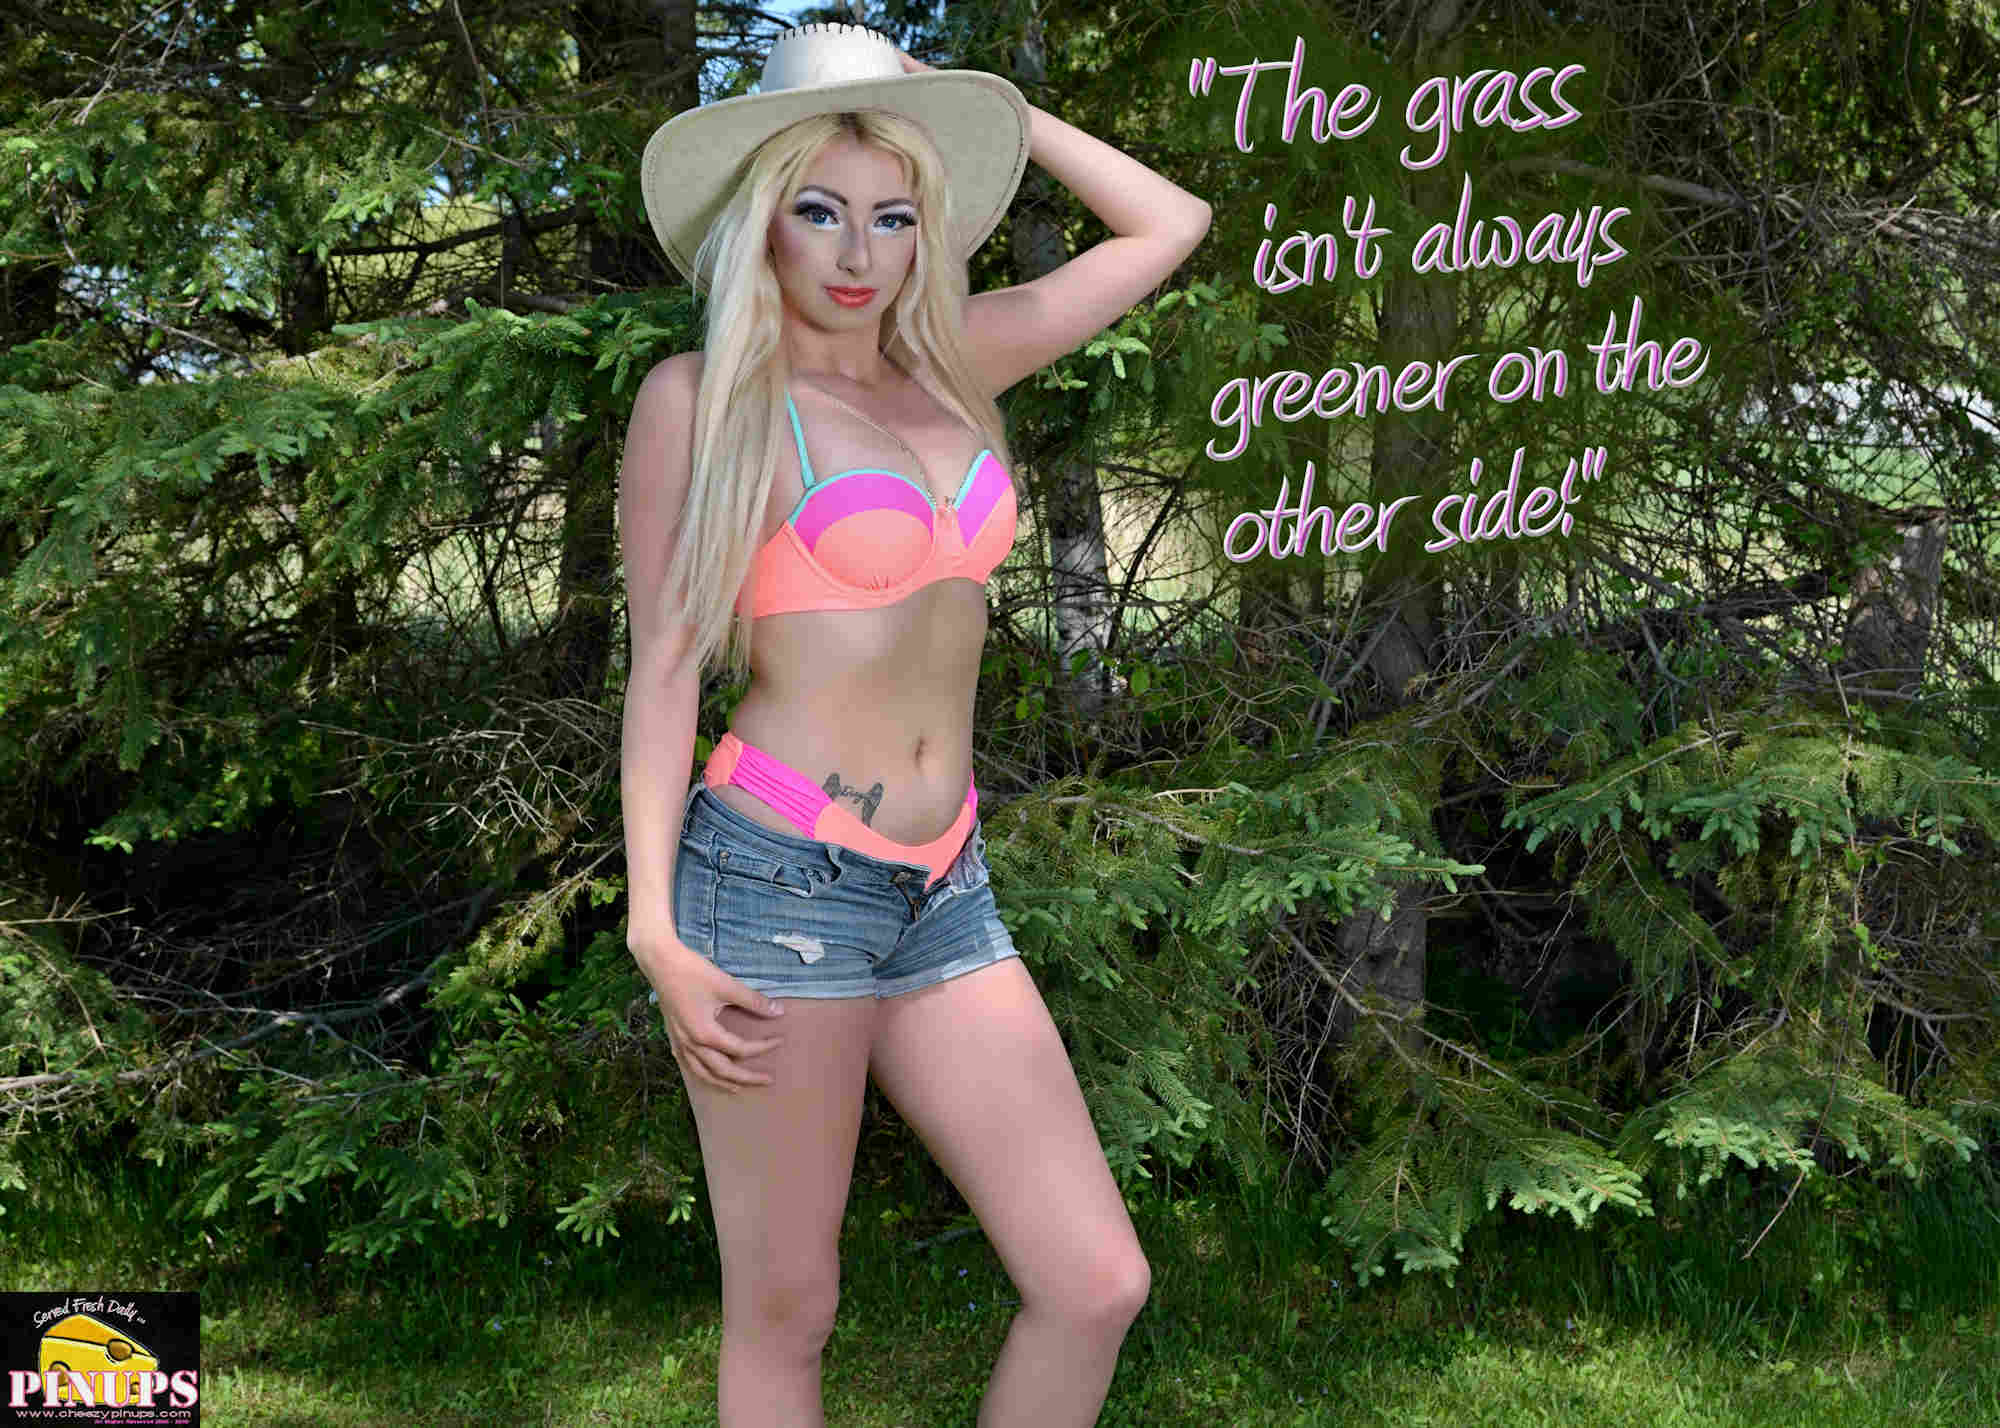 """Cheezy Pinup - February 25, 2018   """"The grass isn't always greener on the other side!"""" - @RickyGervais Model: Shayla"""